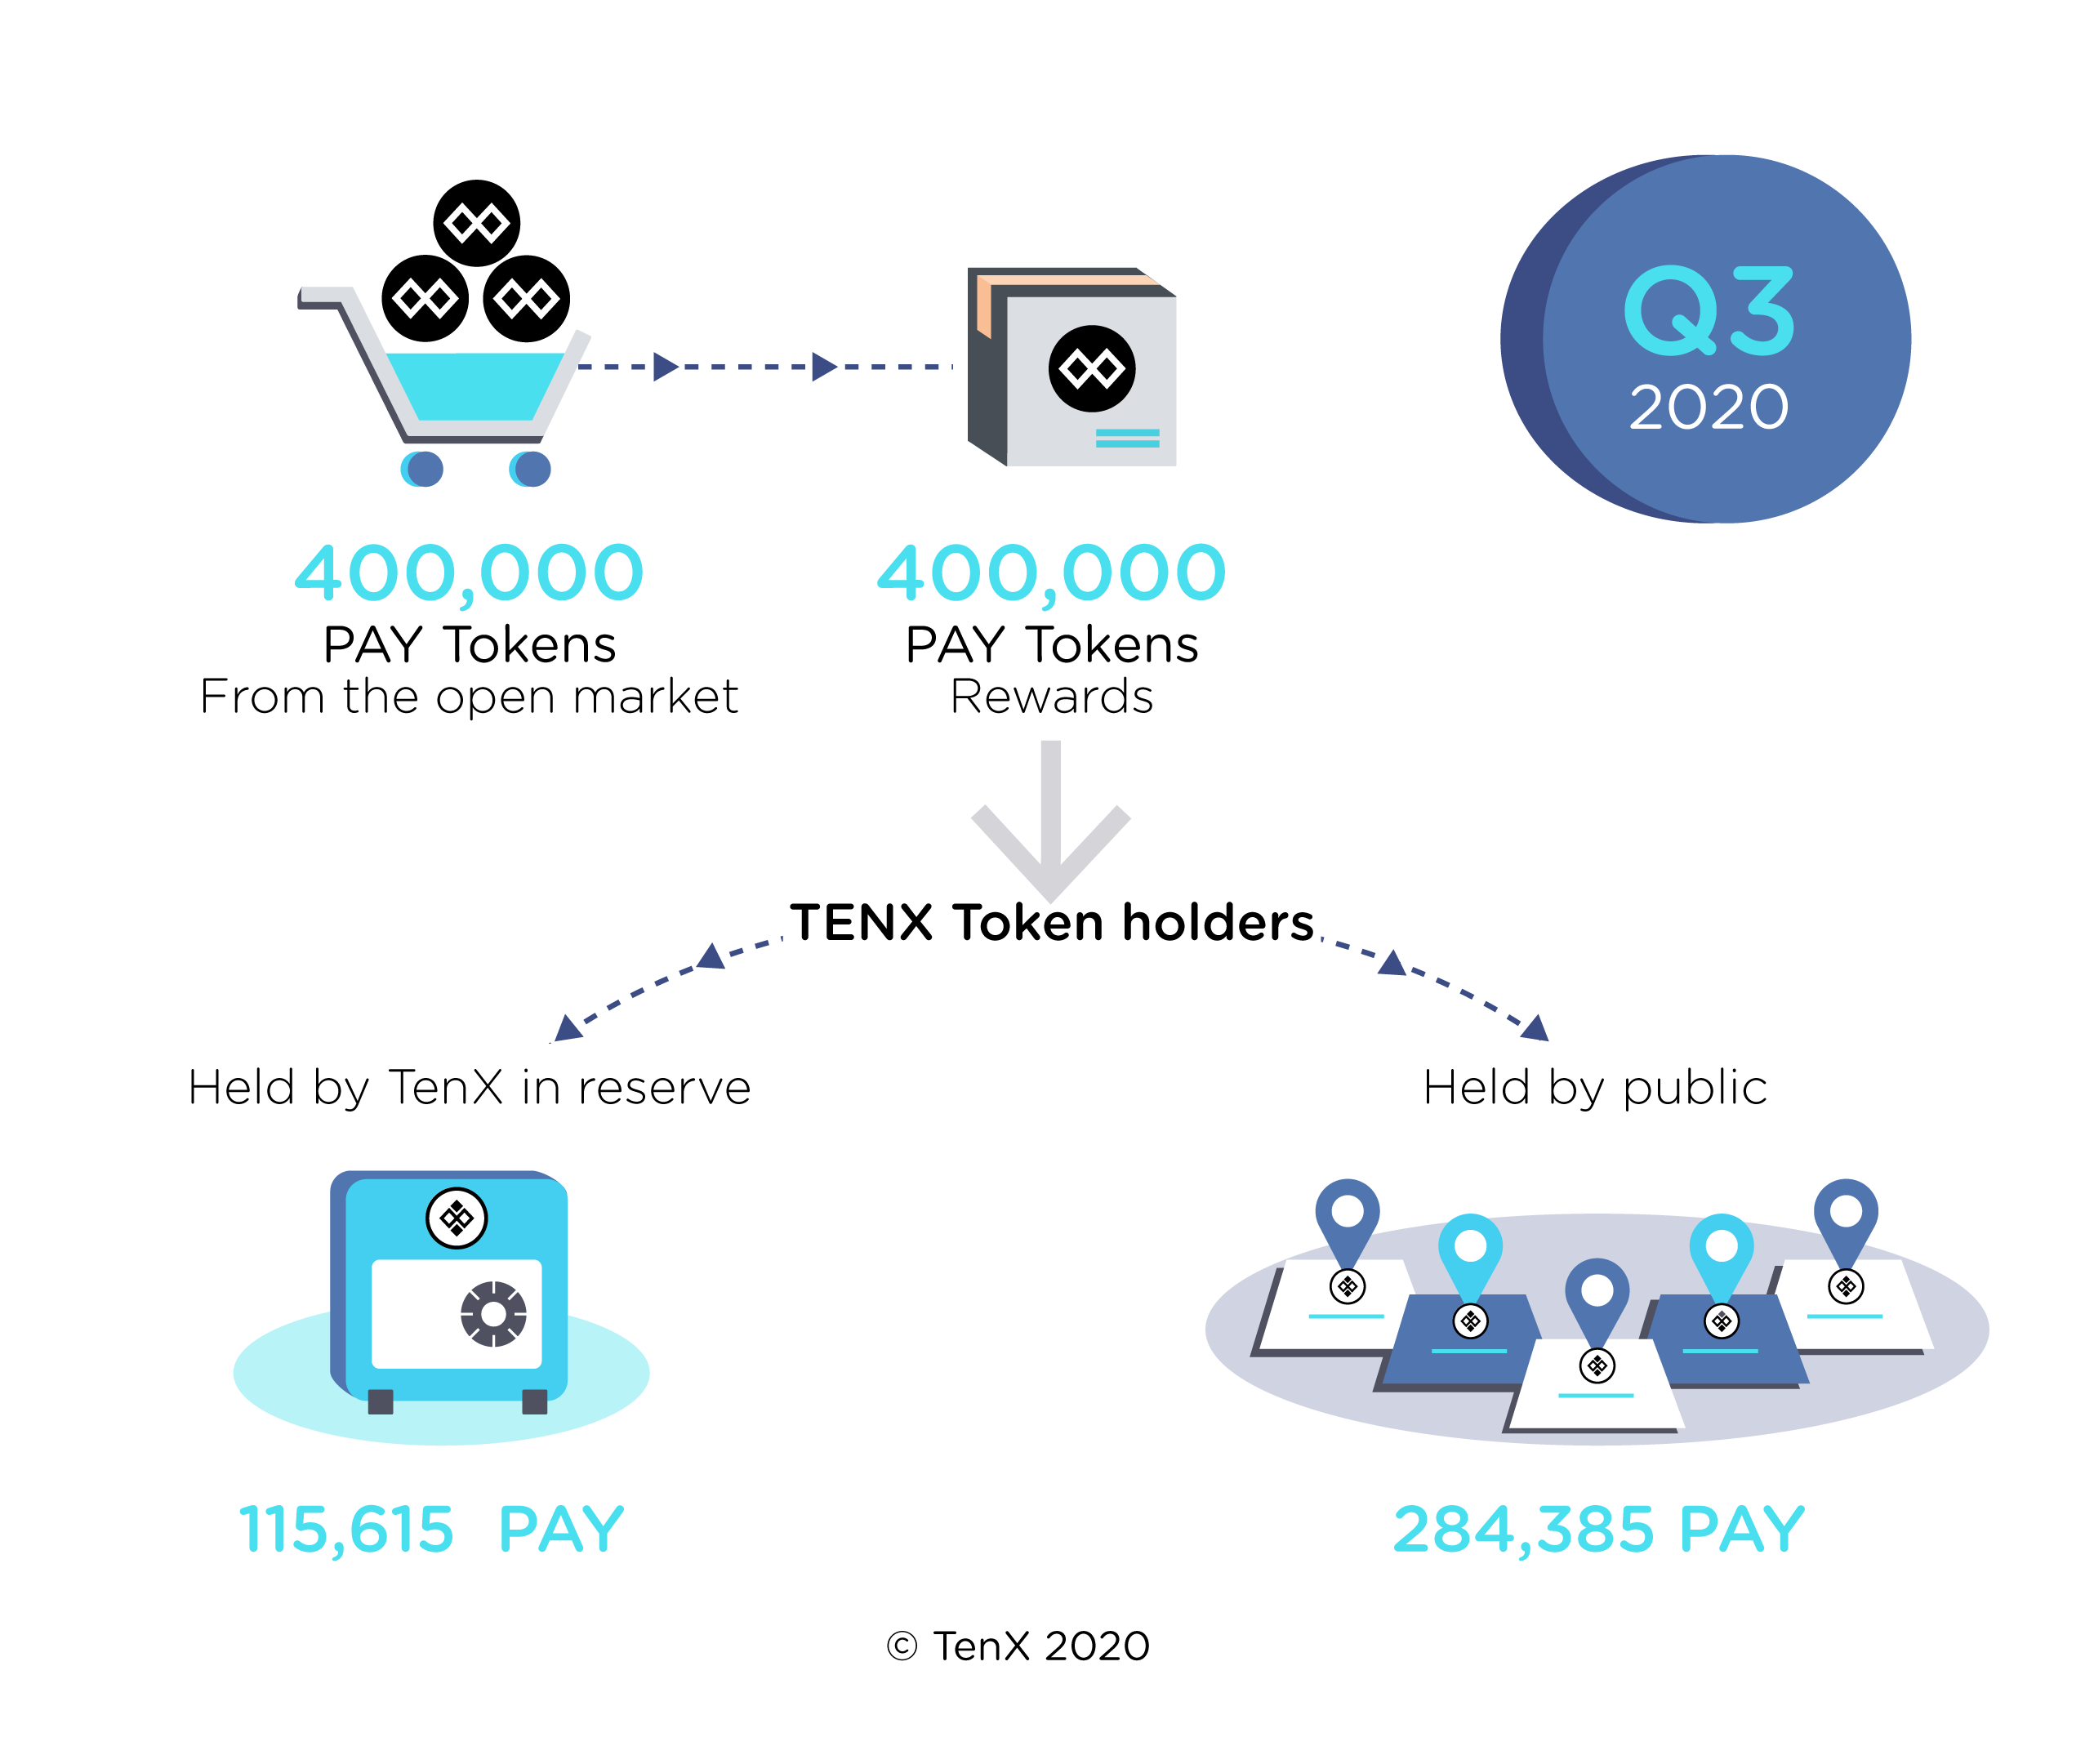 Q3 TENX Token Rewards in PAY Tokens